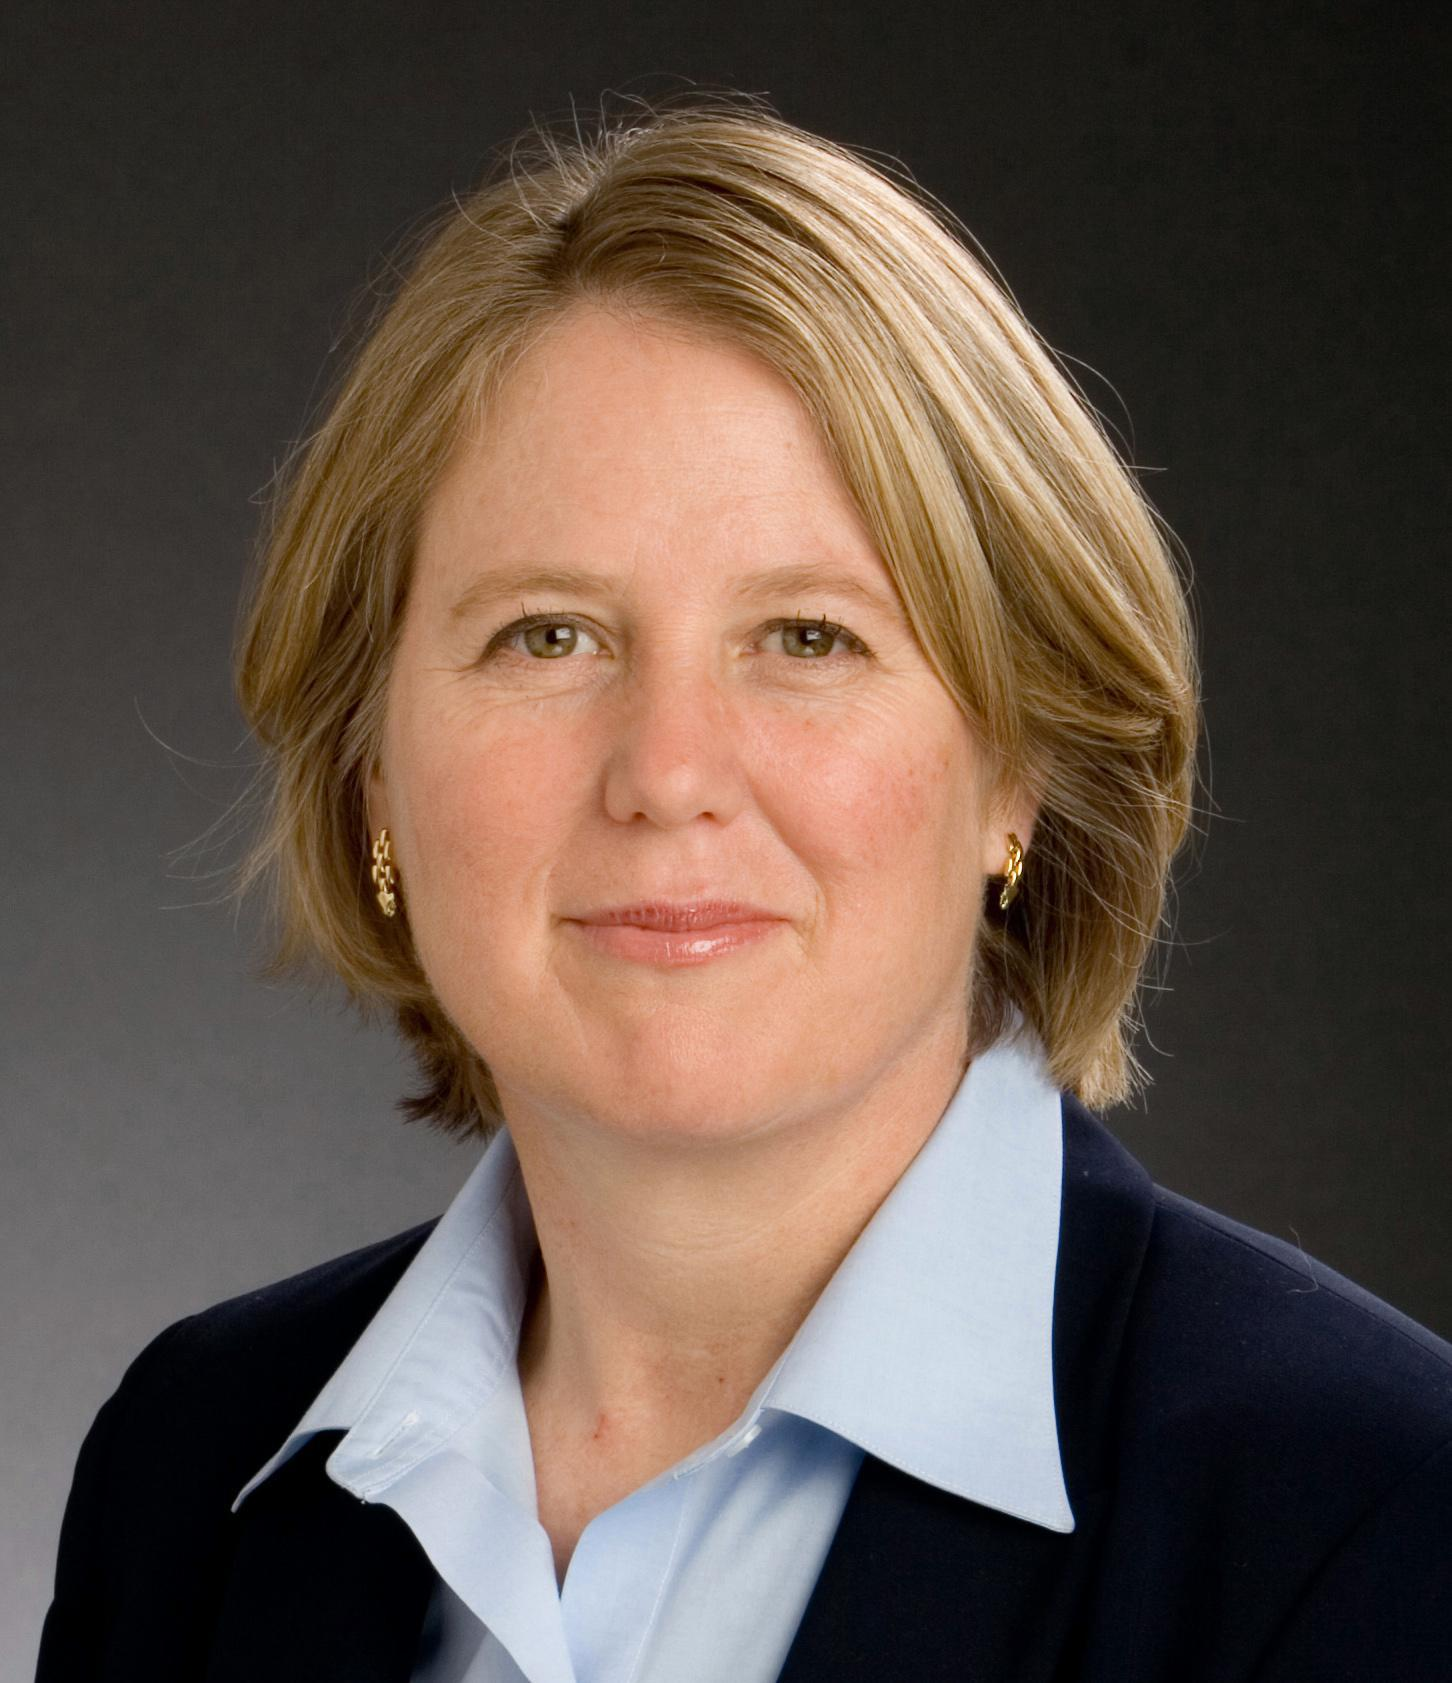 Diane Greene, Google's cloud computing technology head